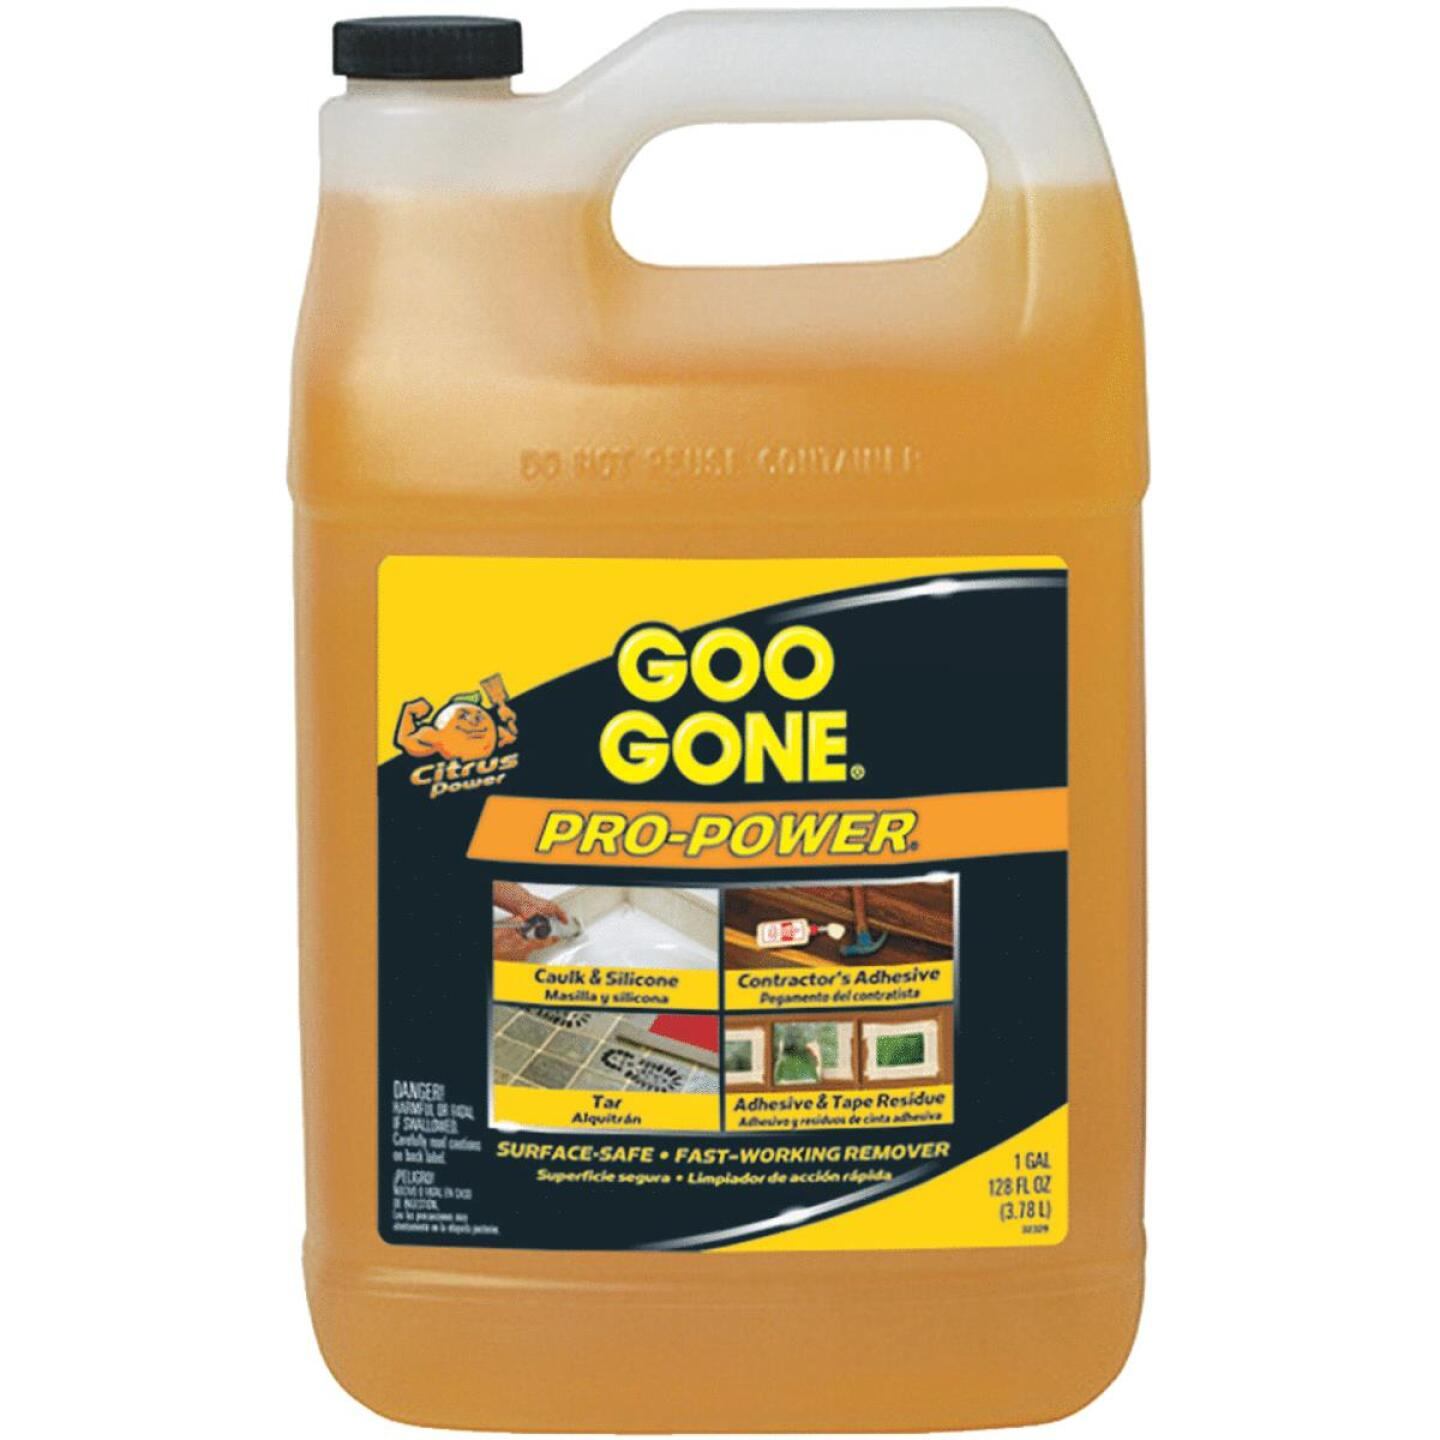 Goo Gone 1 Gal. Pro-Power Adhesive Remover Image 234